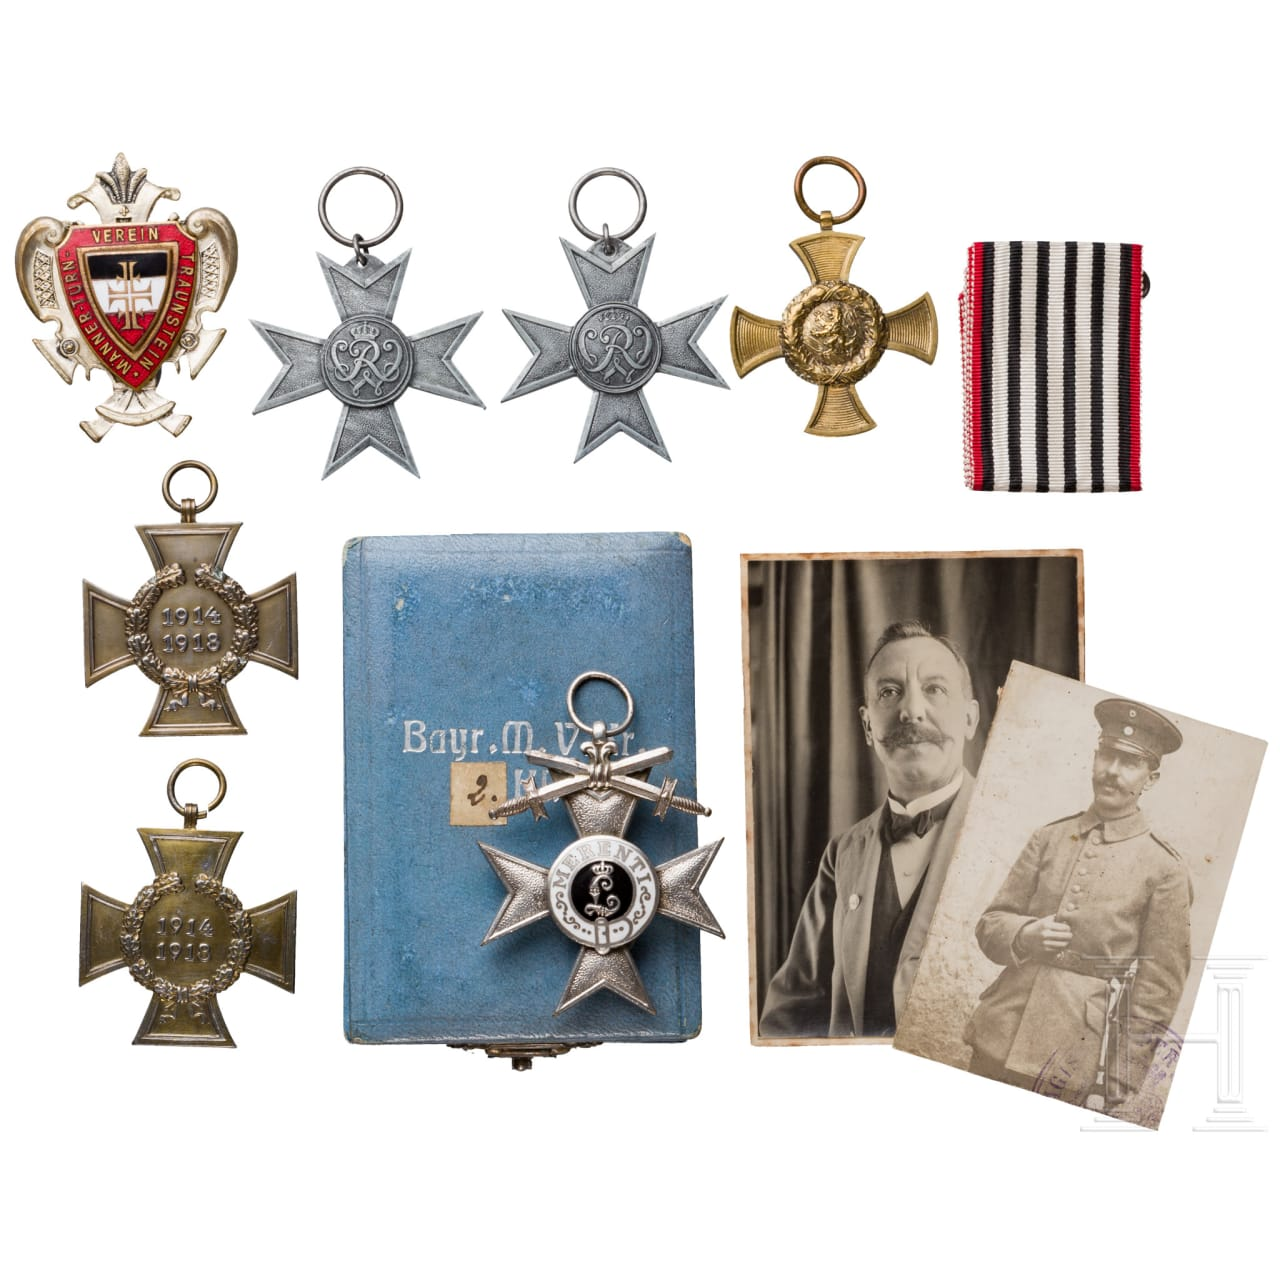 Group of awards, photos and postcards 1st world war - Traunstein in Bavaria